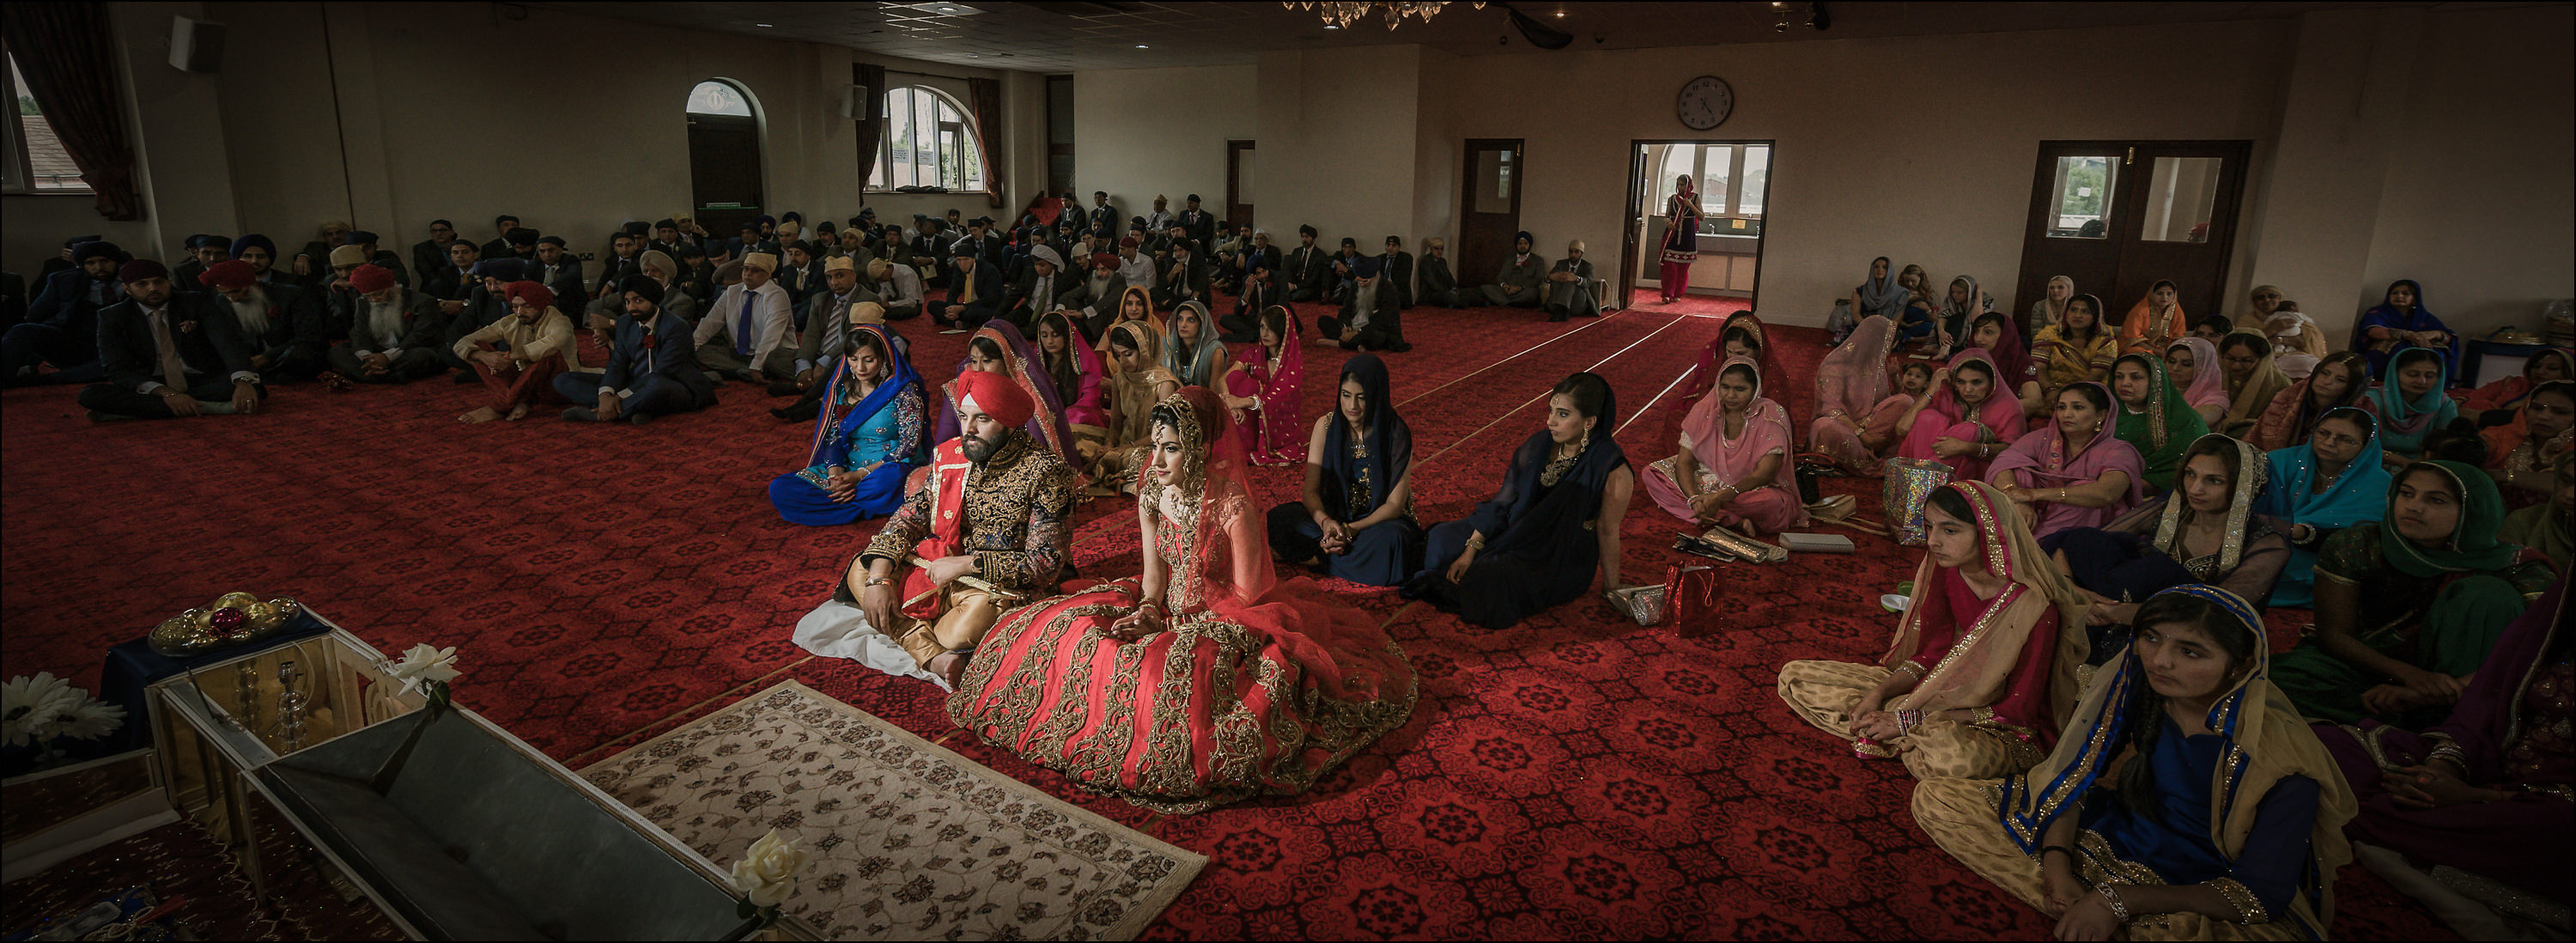 best-asian-wedding-ragley-hall-didar-virdi-14